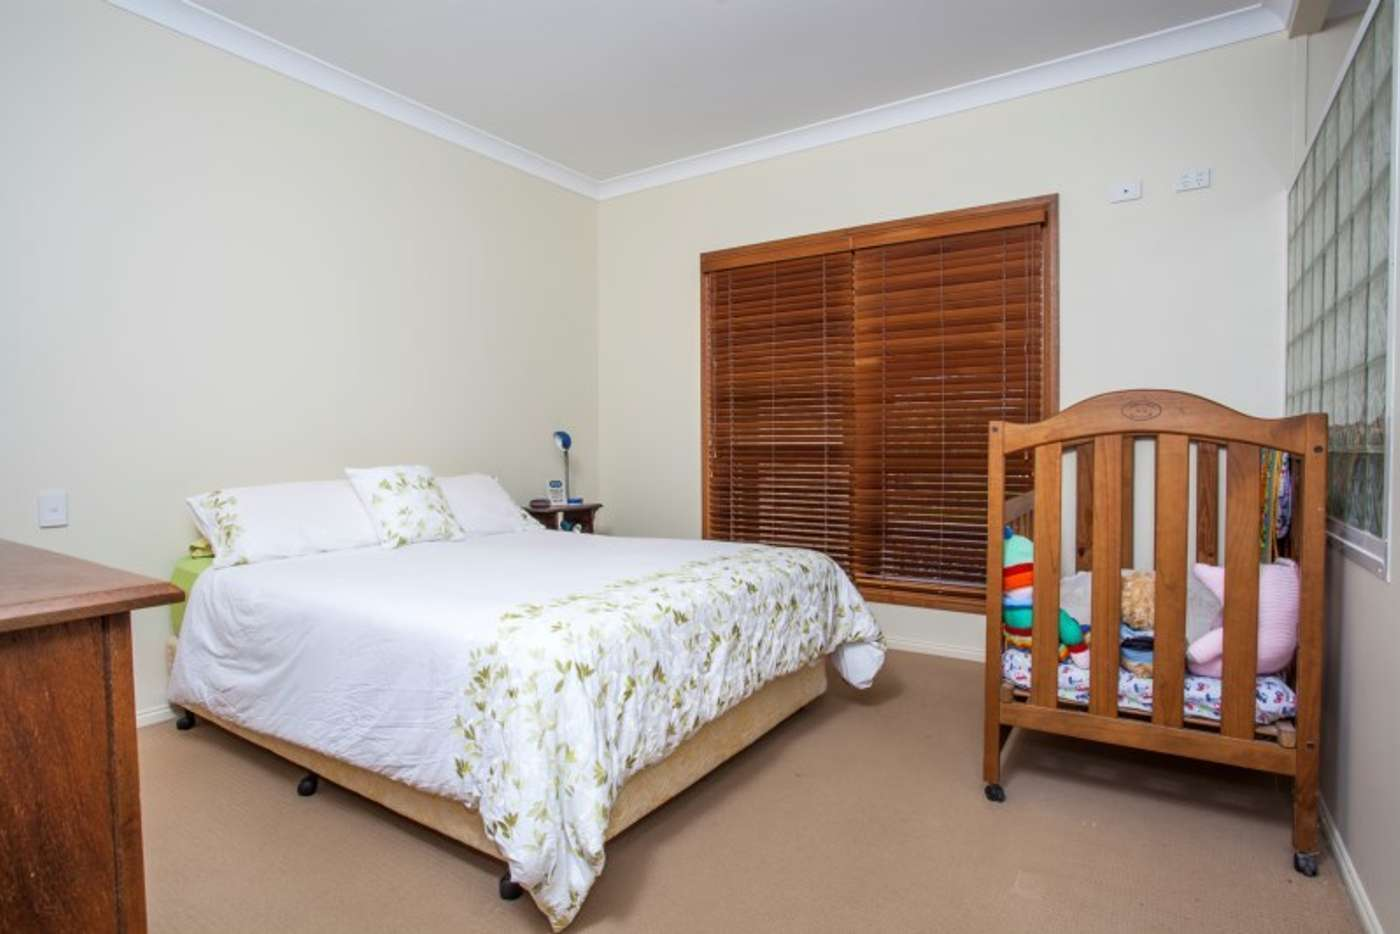 Sixth view of Homely house listing, 73-75 Butler Road, Doonan QLD 4562